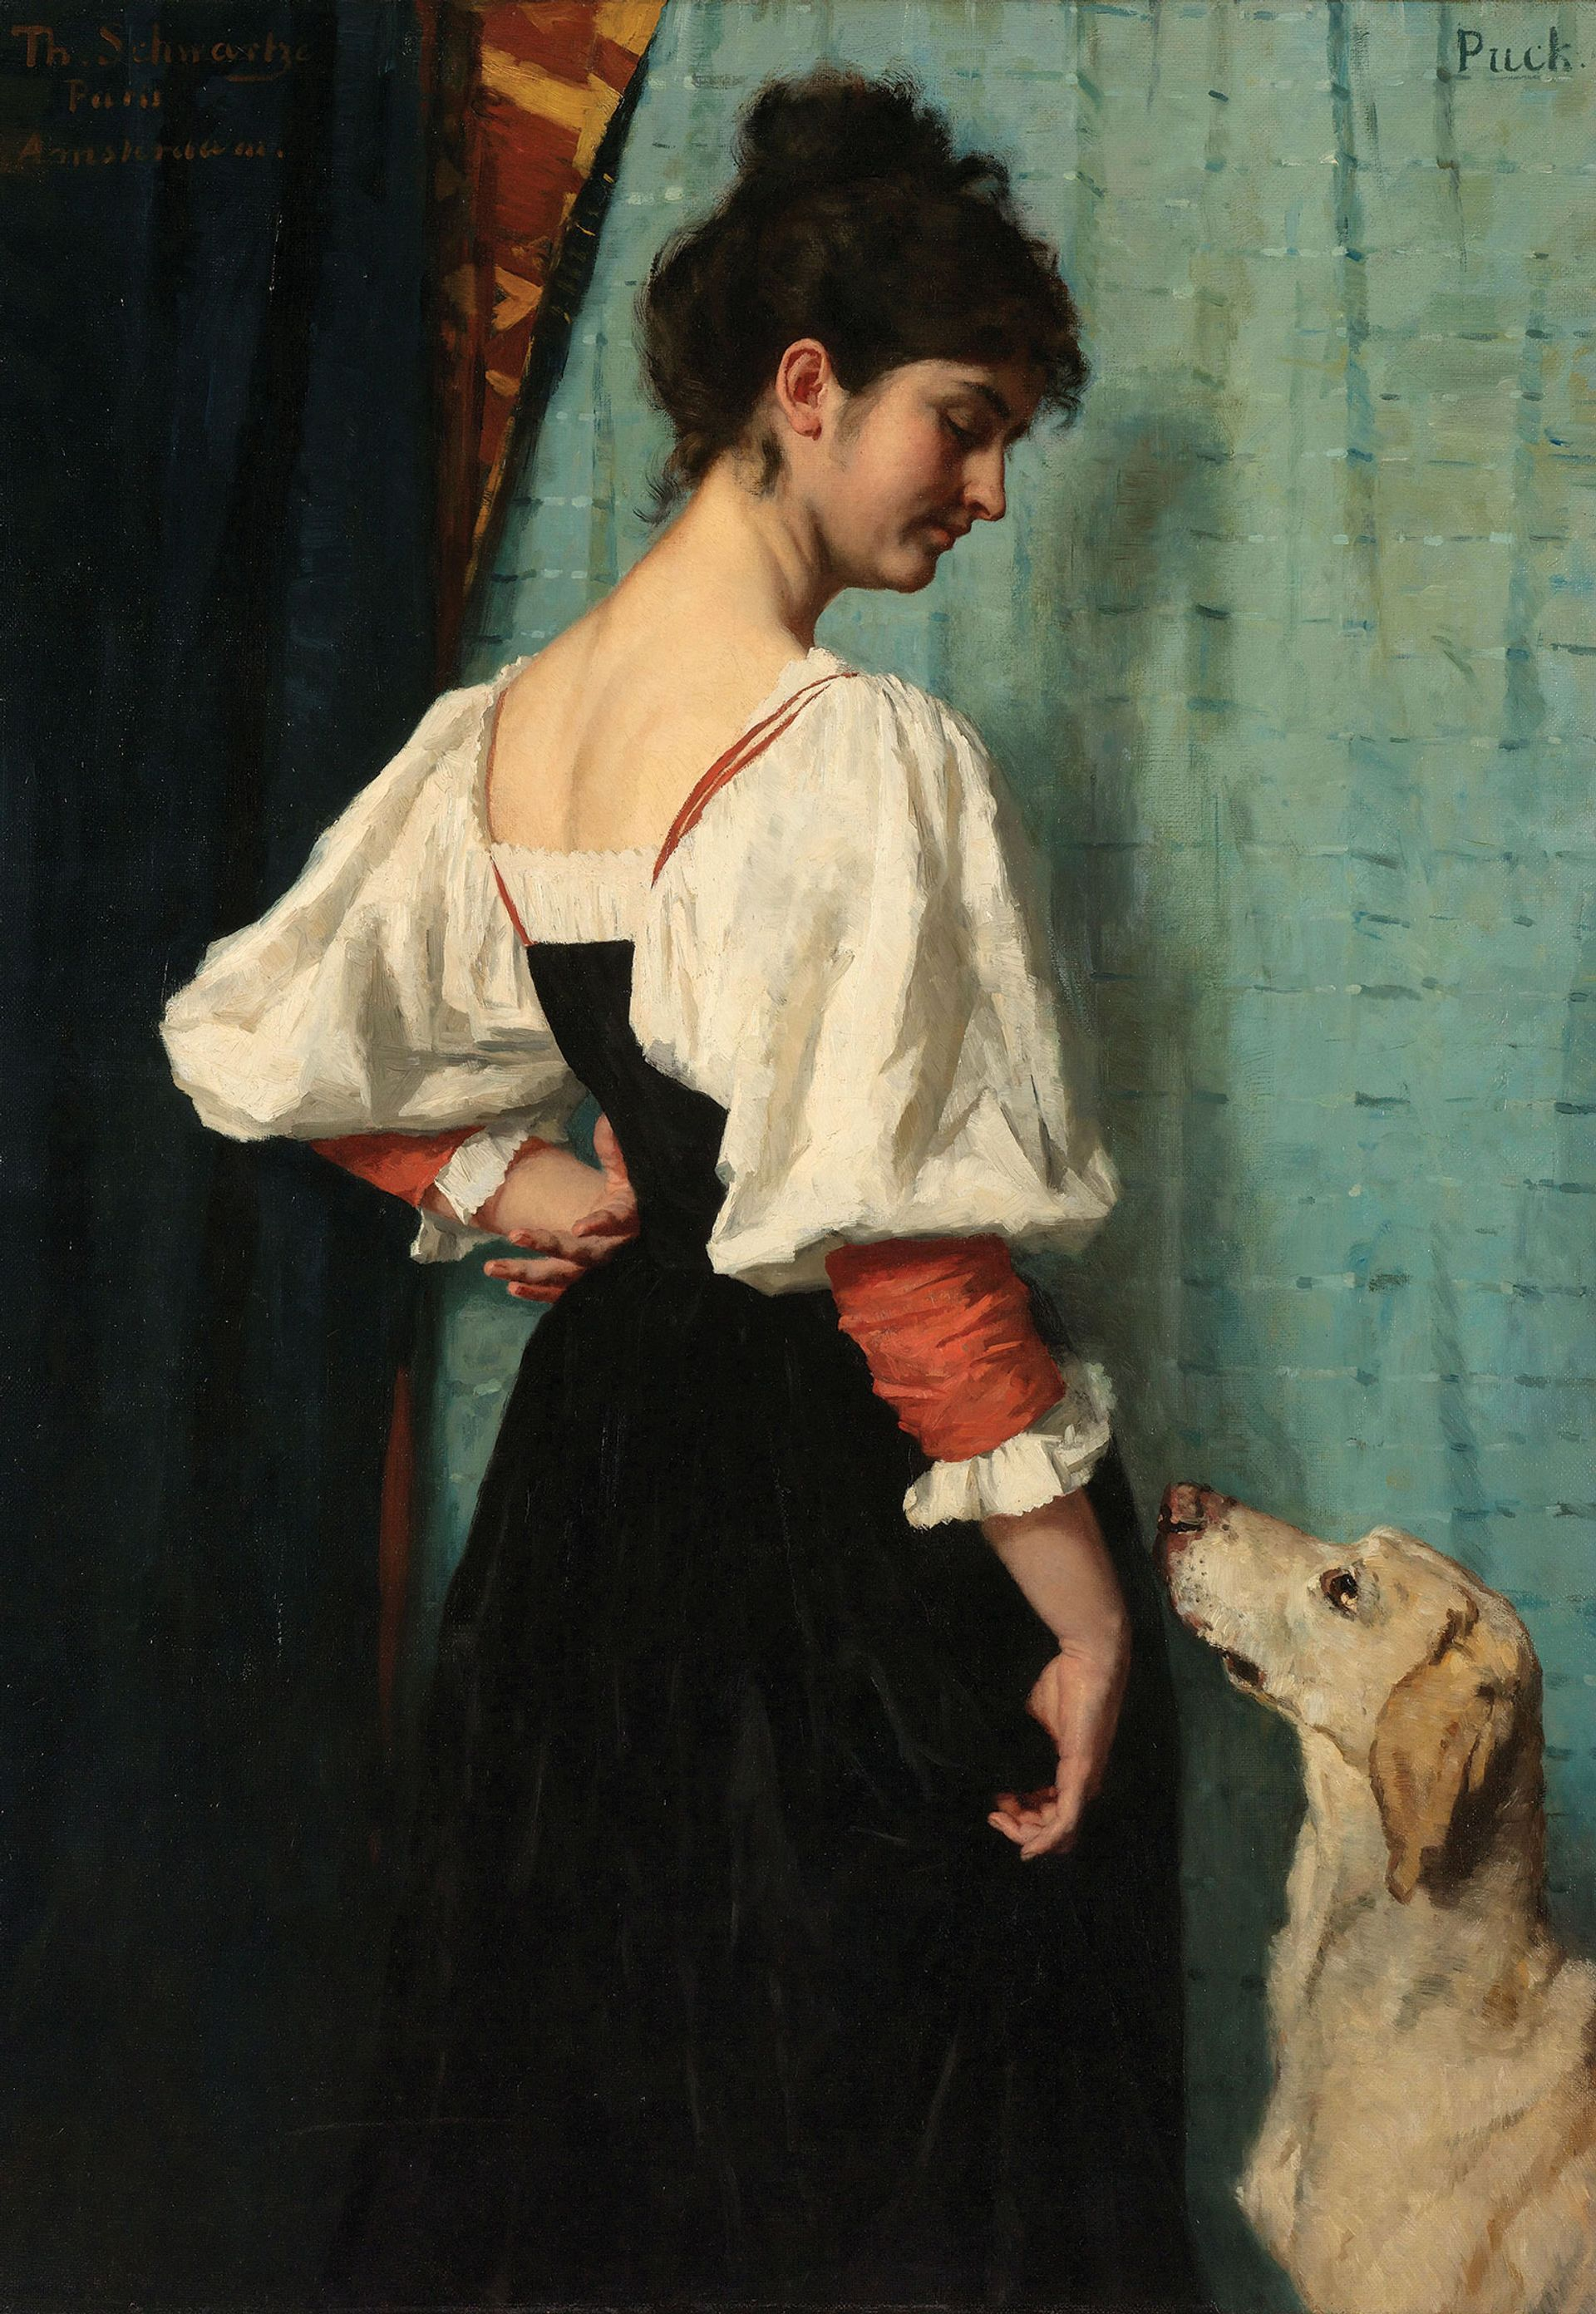 Thérèse Schwartze, Portrait of a Young Woman with 'Puck' the Dog (around 1884-85) Courtesy of Rijksmuseum Amsterdam